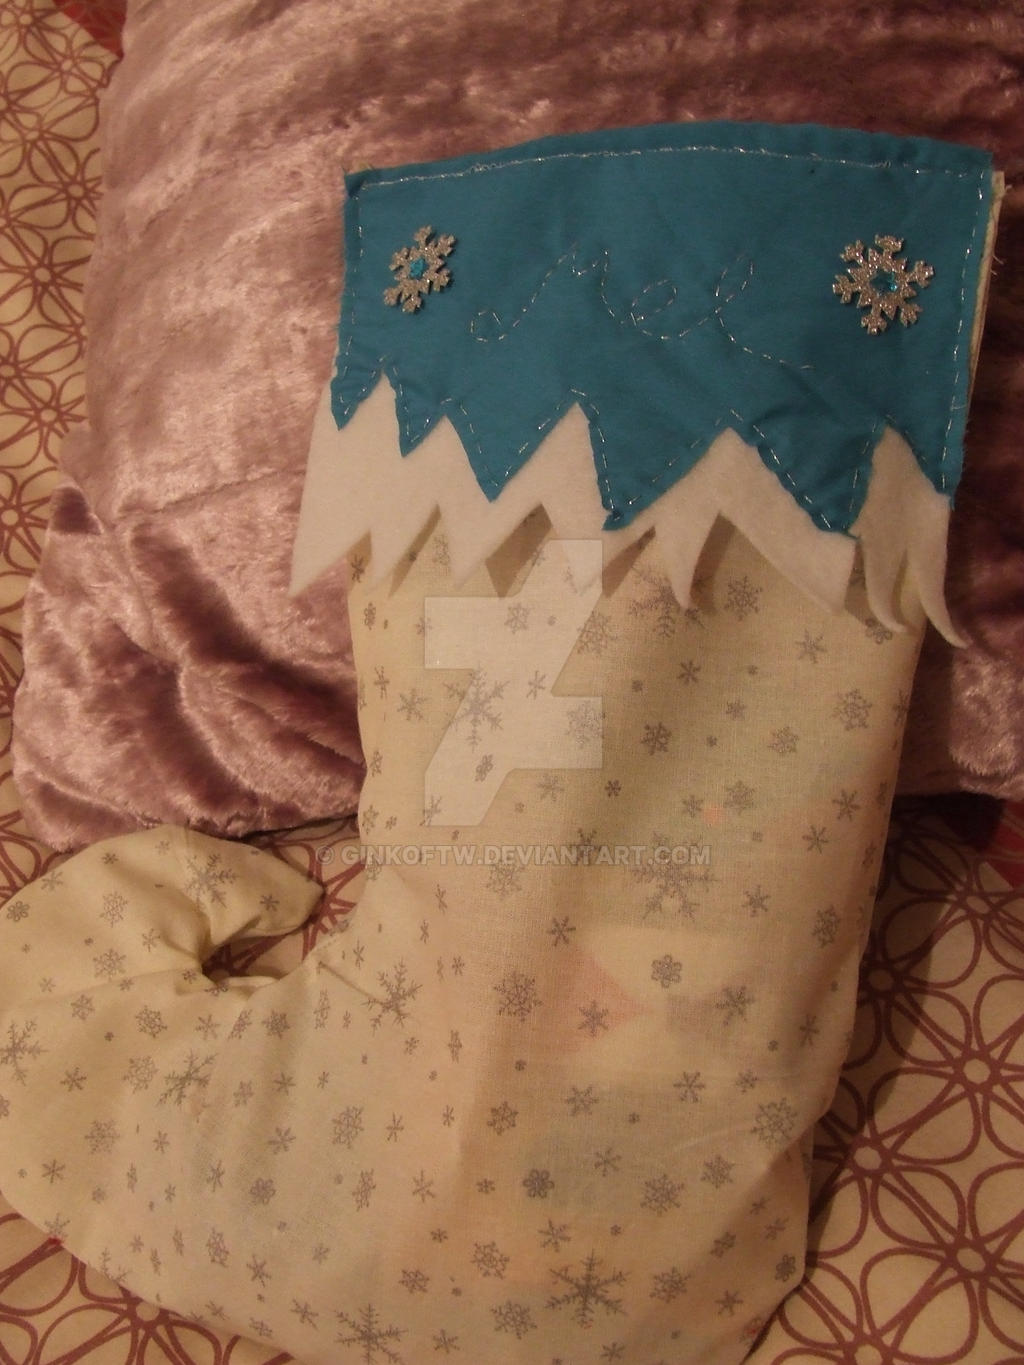 snowflake stocking by Ginkoftw